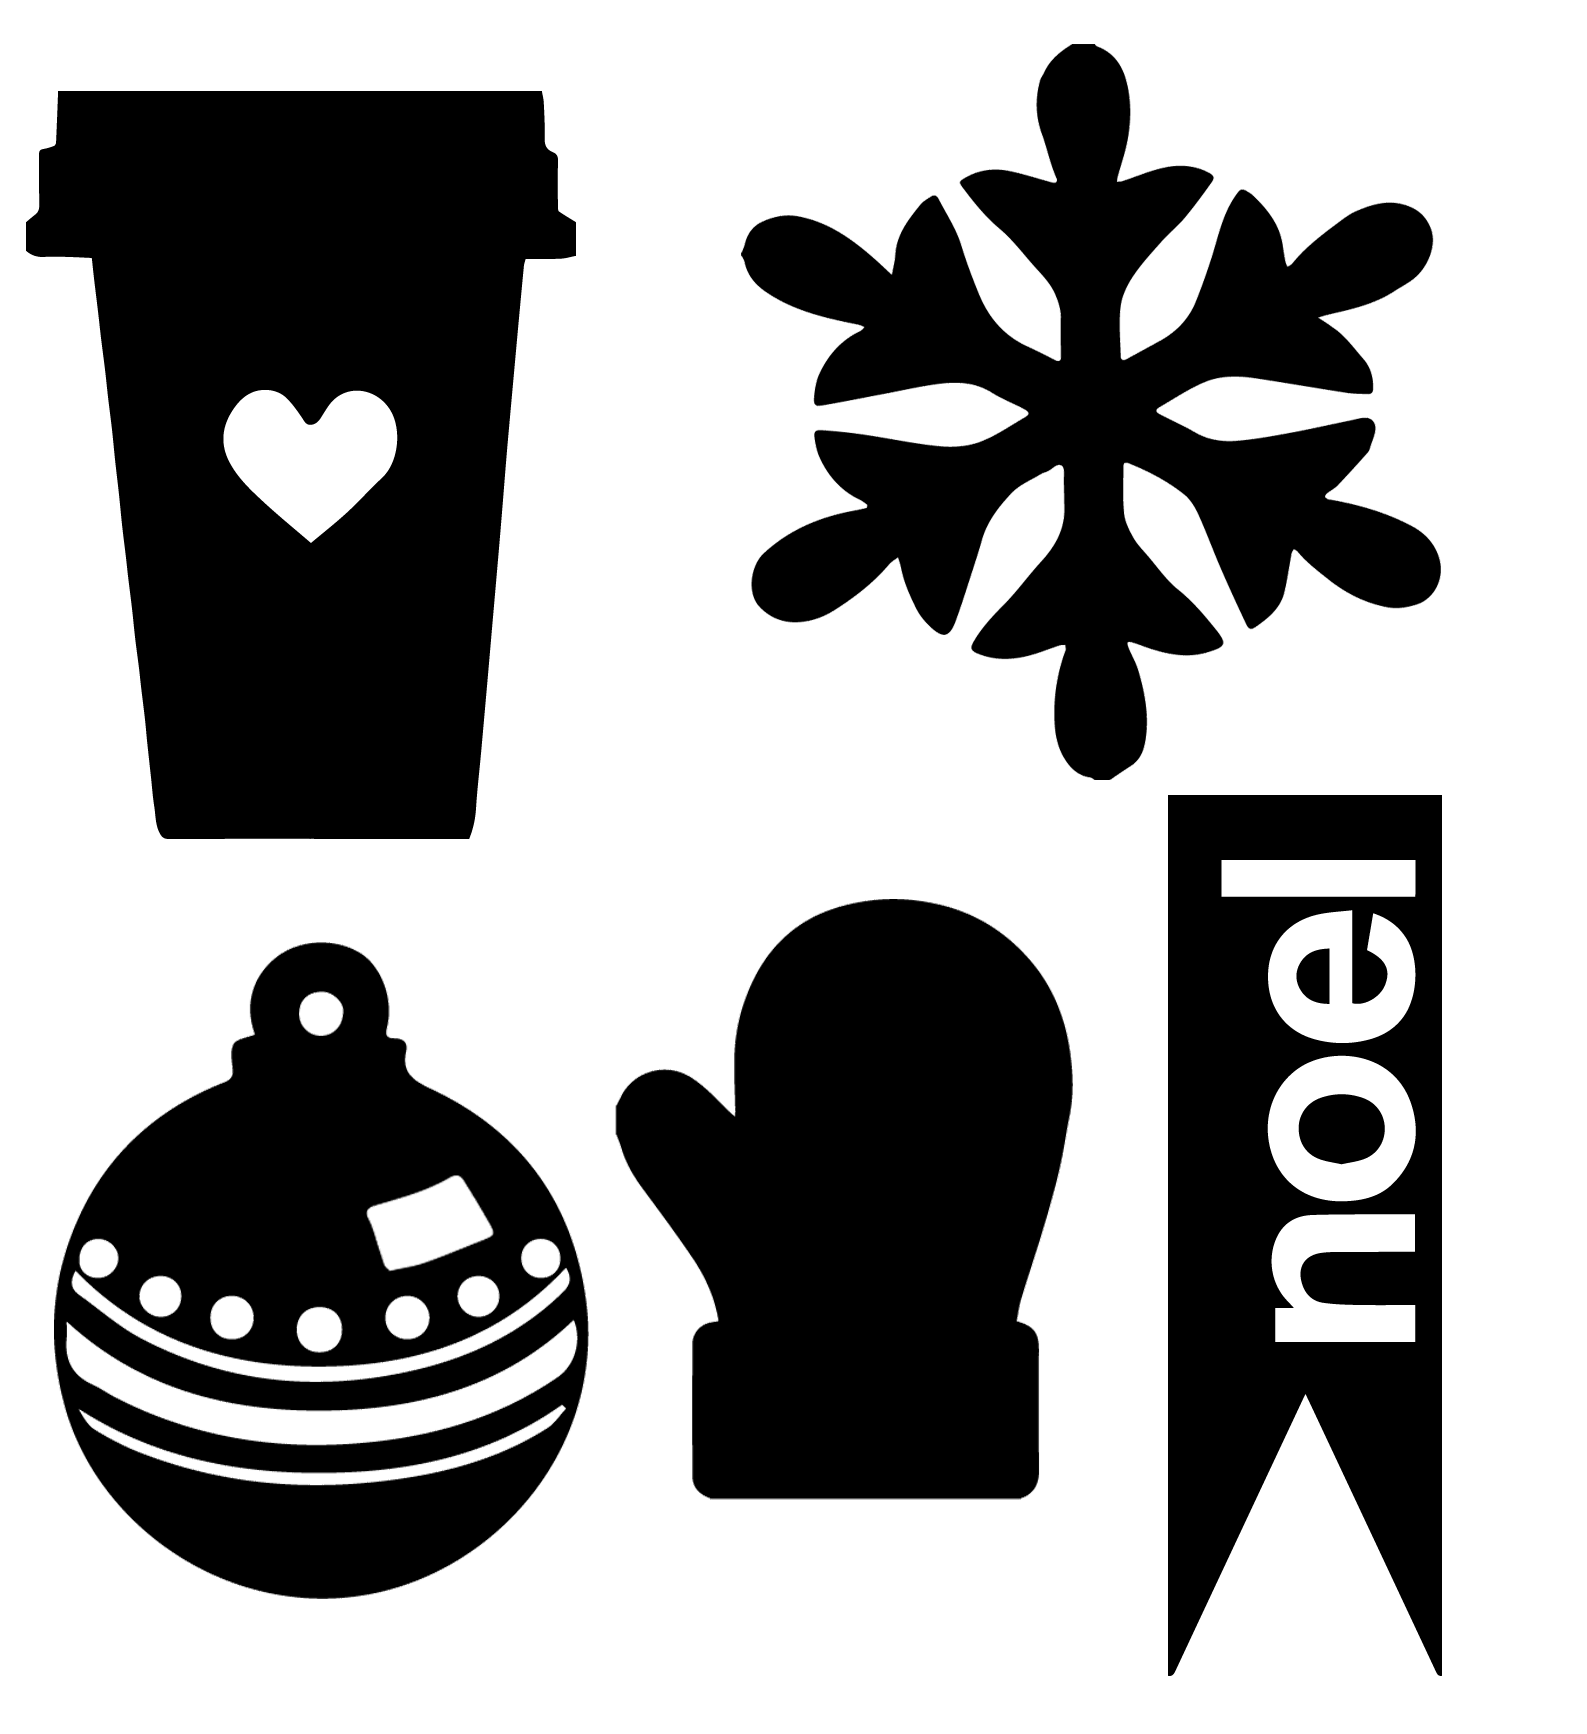 Free clipart images for silhouette cameo clip art download Silhouette cameo clip art clipart images gallery for free download ... clip art download